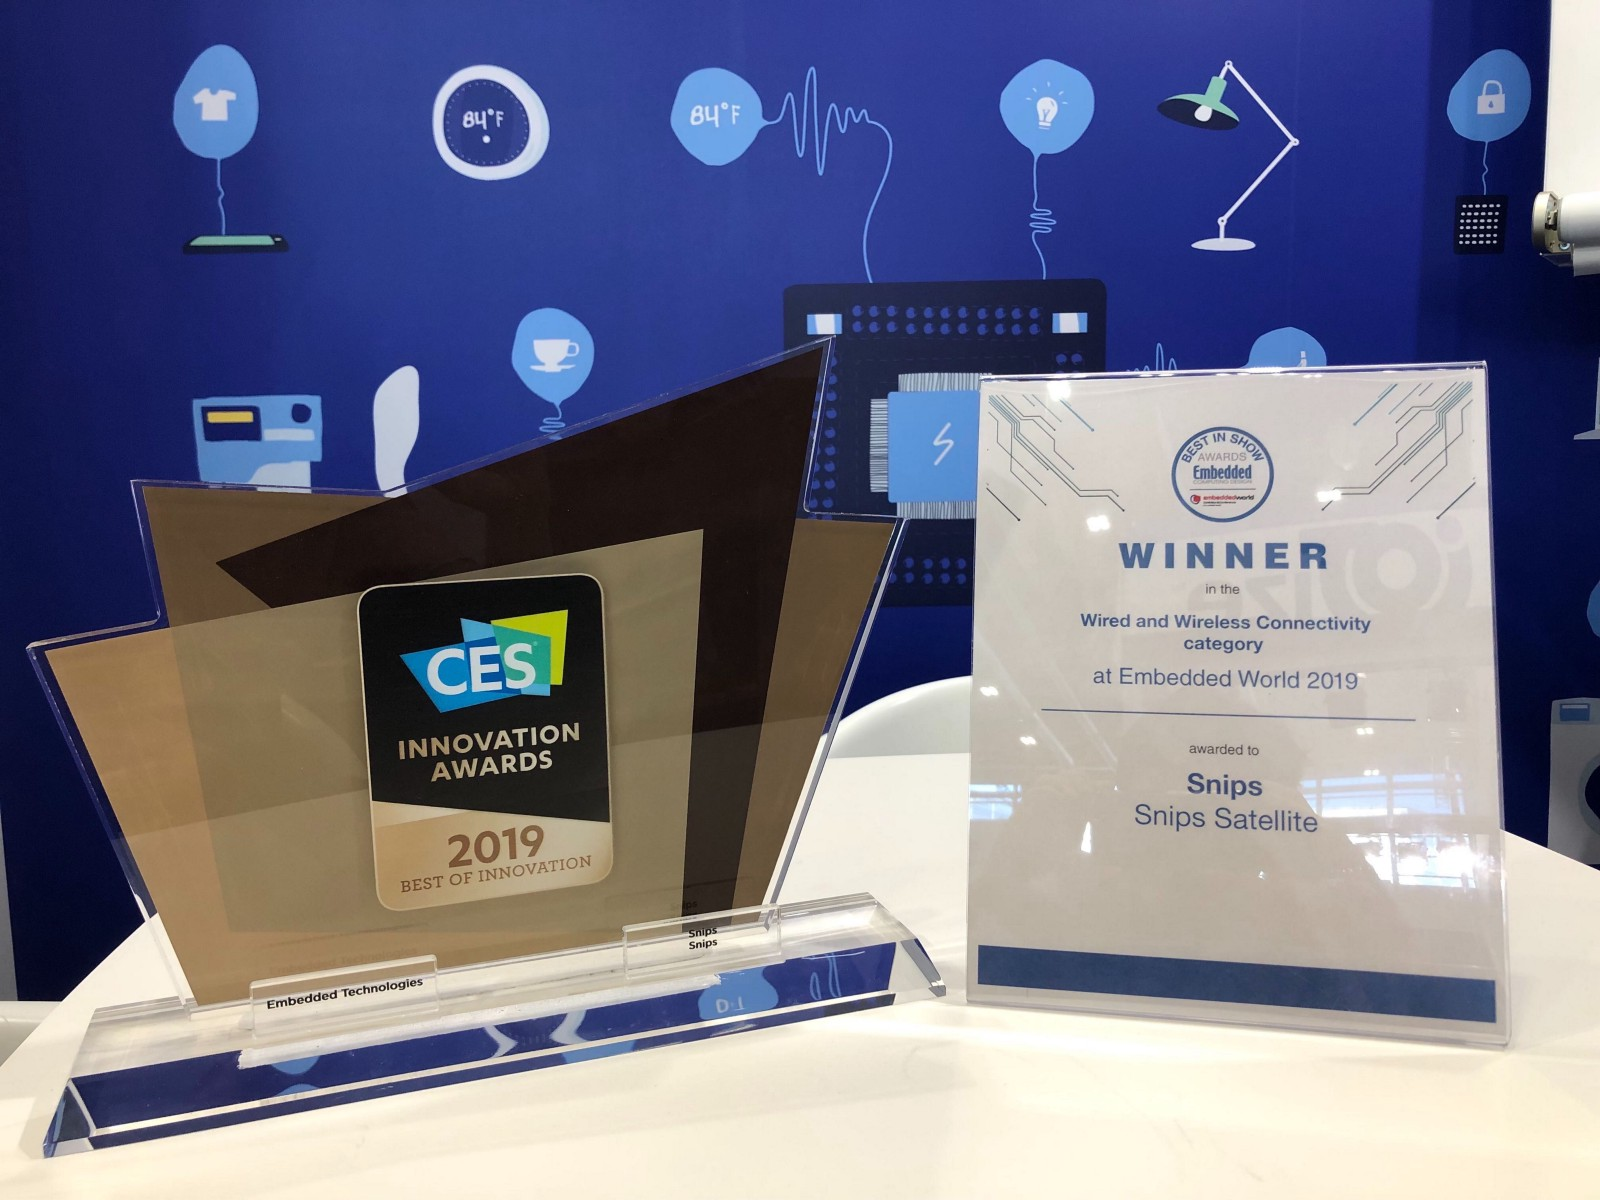 CES Embedded World awards 2019 AI